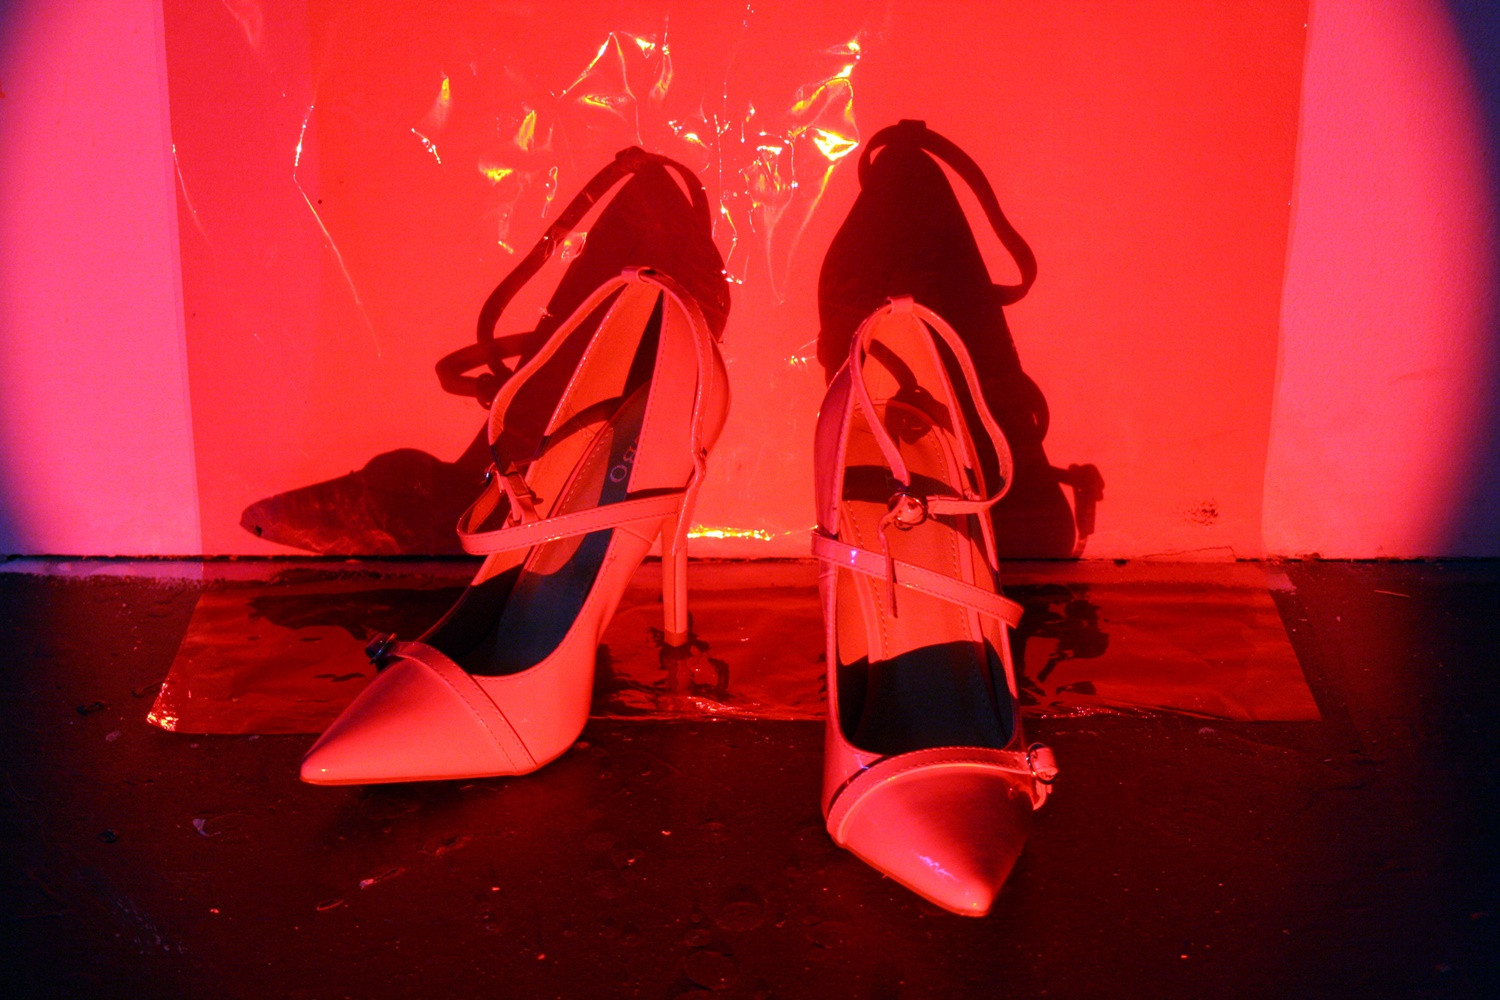 red light shoes detail